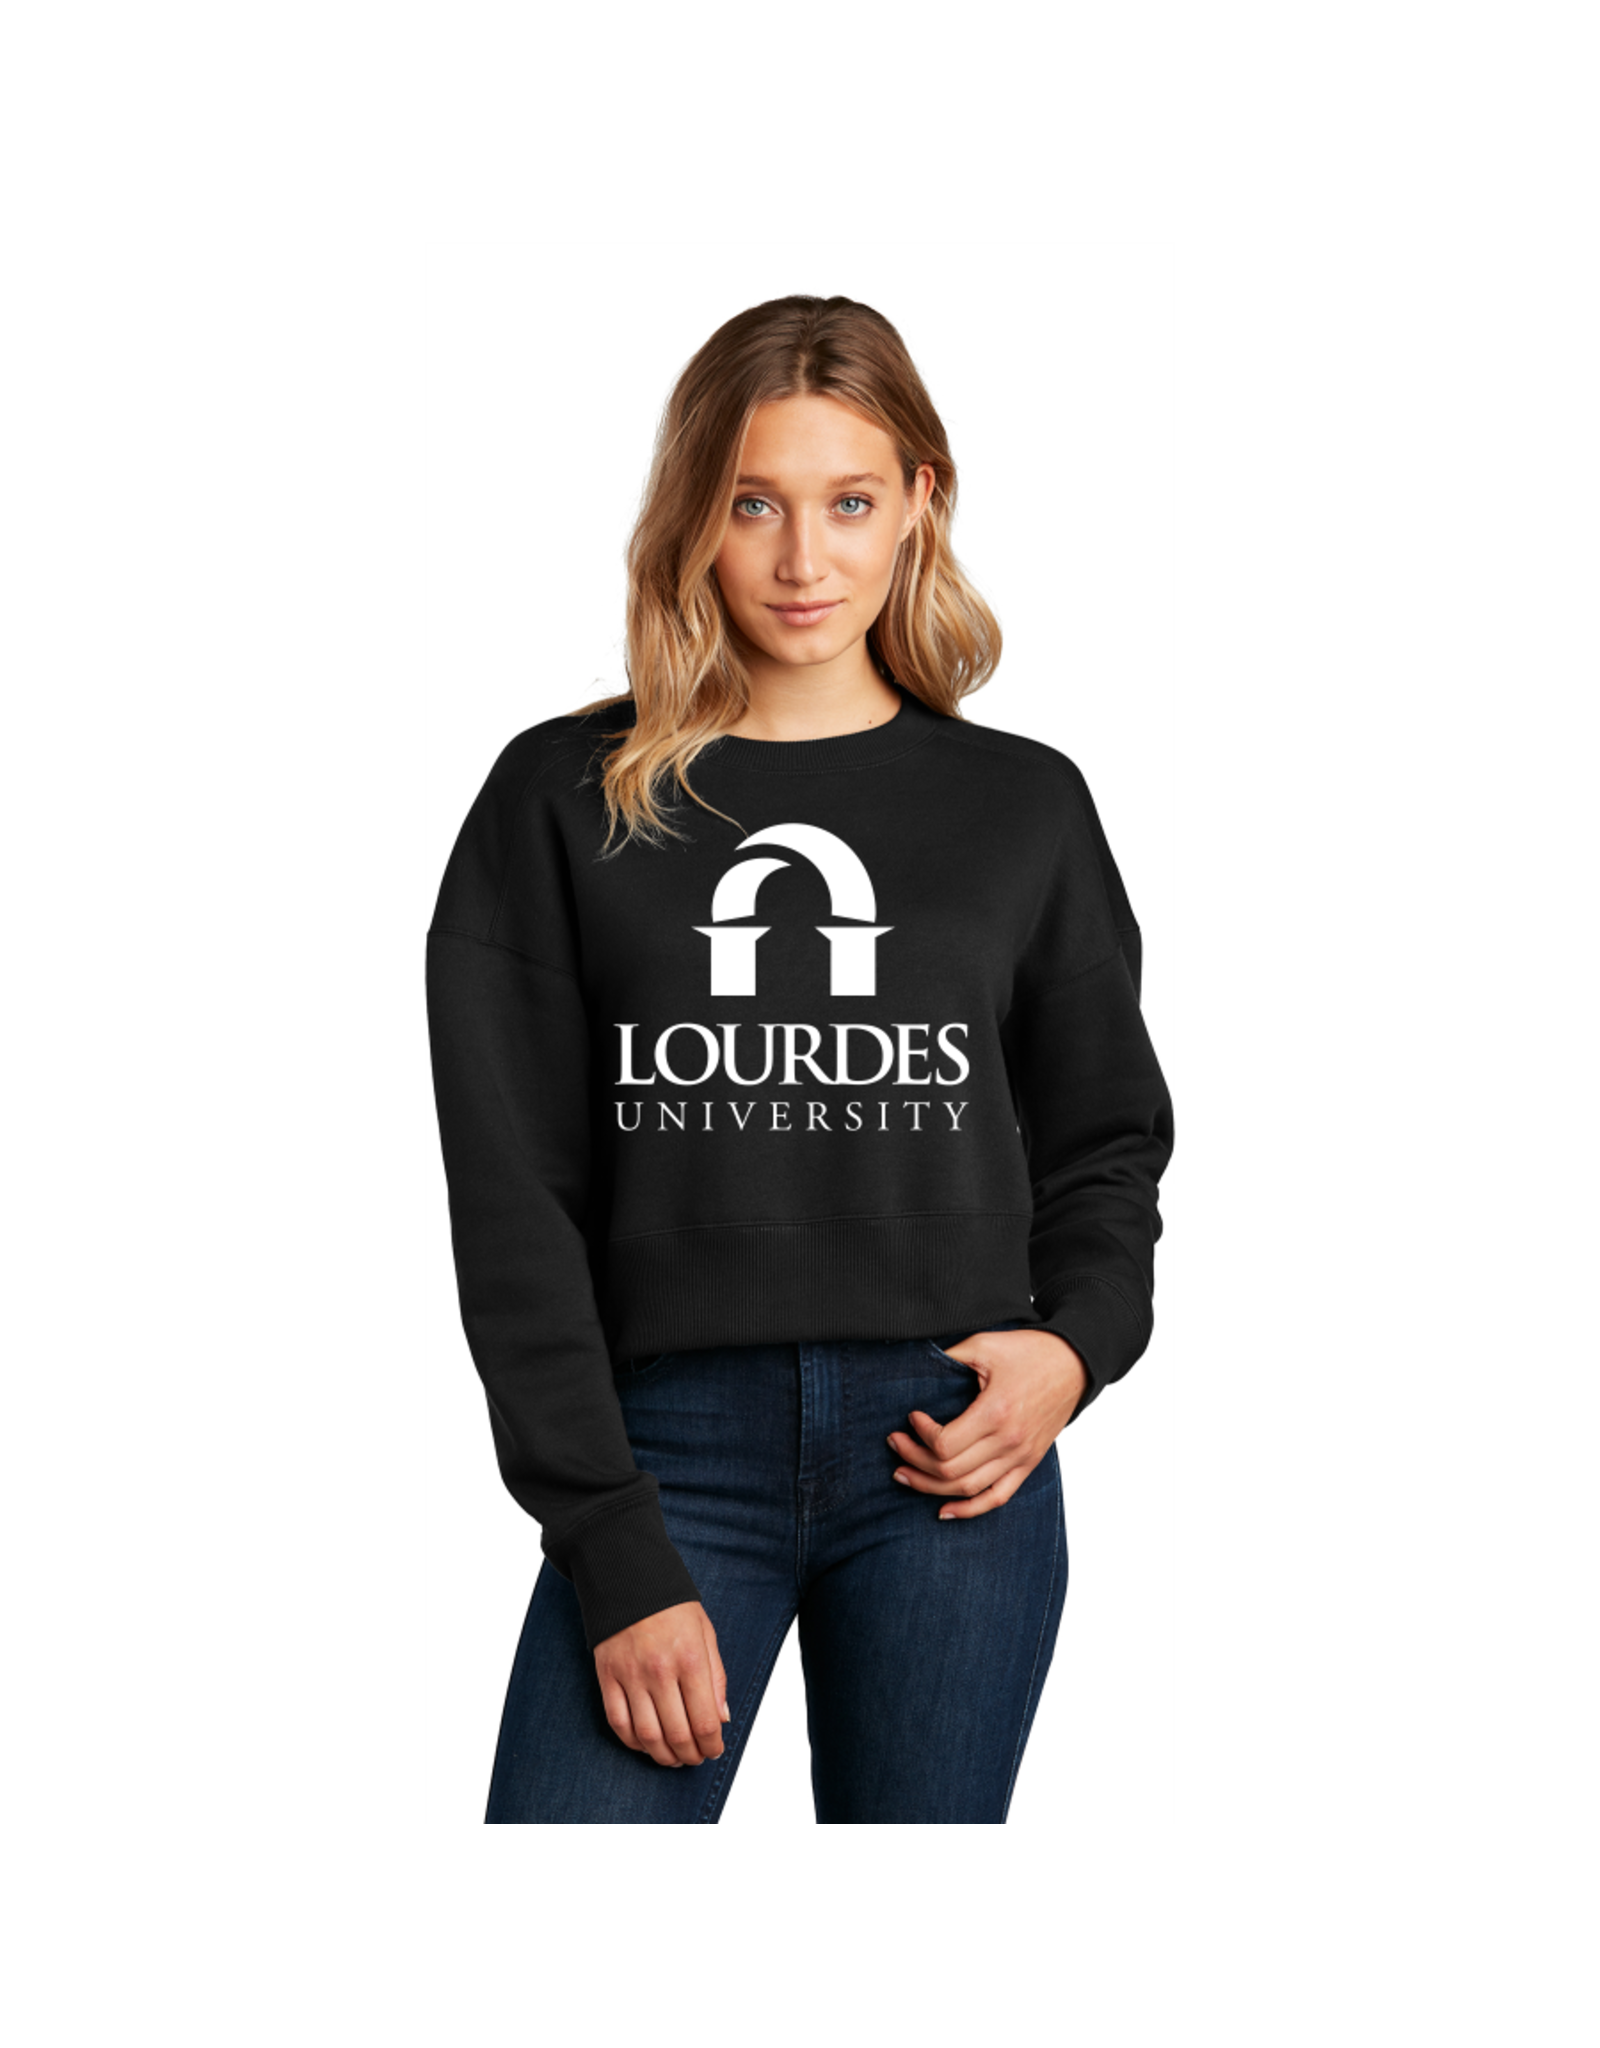 District District ® Women's Perfect Weight ® Fleece Cropped Crew | Lourdes Univ. *